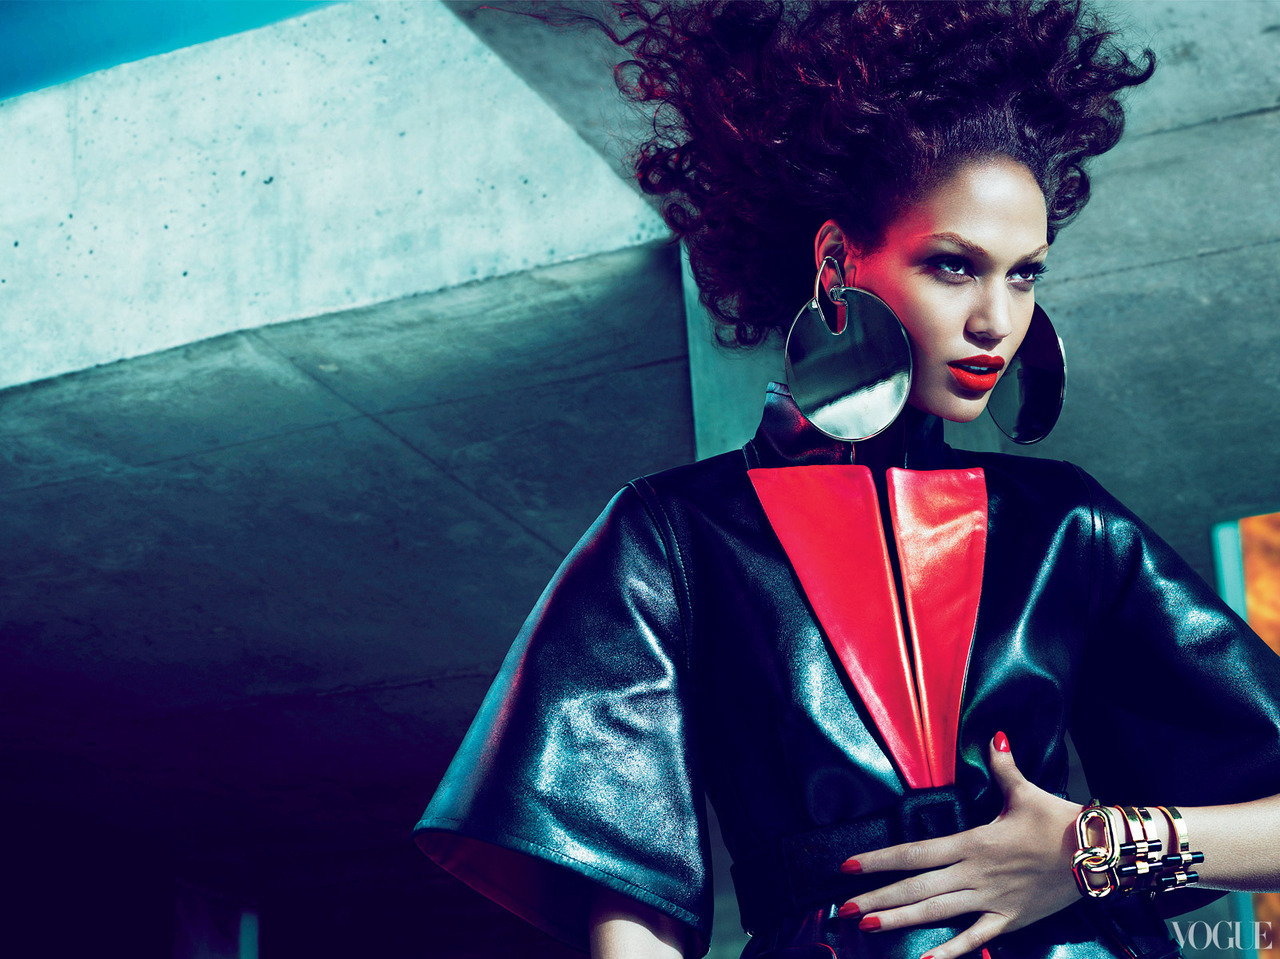 Joan Smalls @ IMG Models  Vogue, July 2012  Editorial - 'Risky Business'  Leather Coat - Givenchy by Riccardo Tisci  Jewellery - Tom Ford  Photo Credits - Mert & Marcus